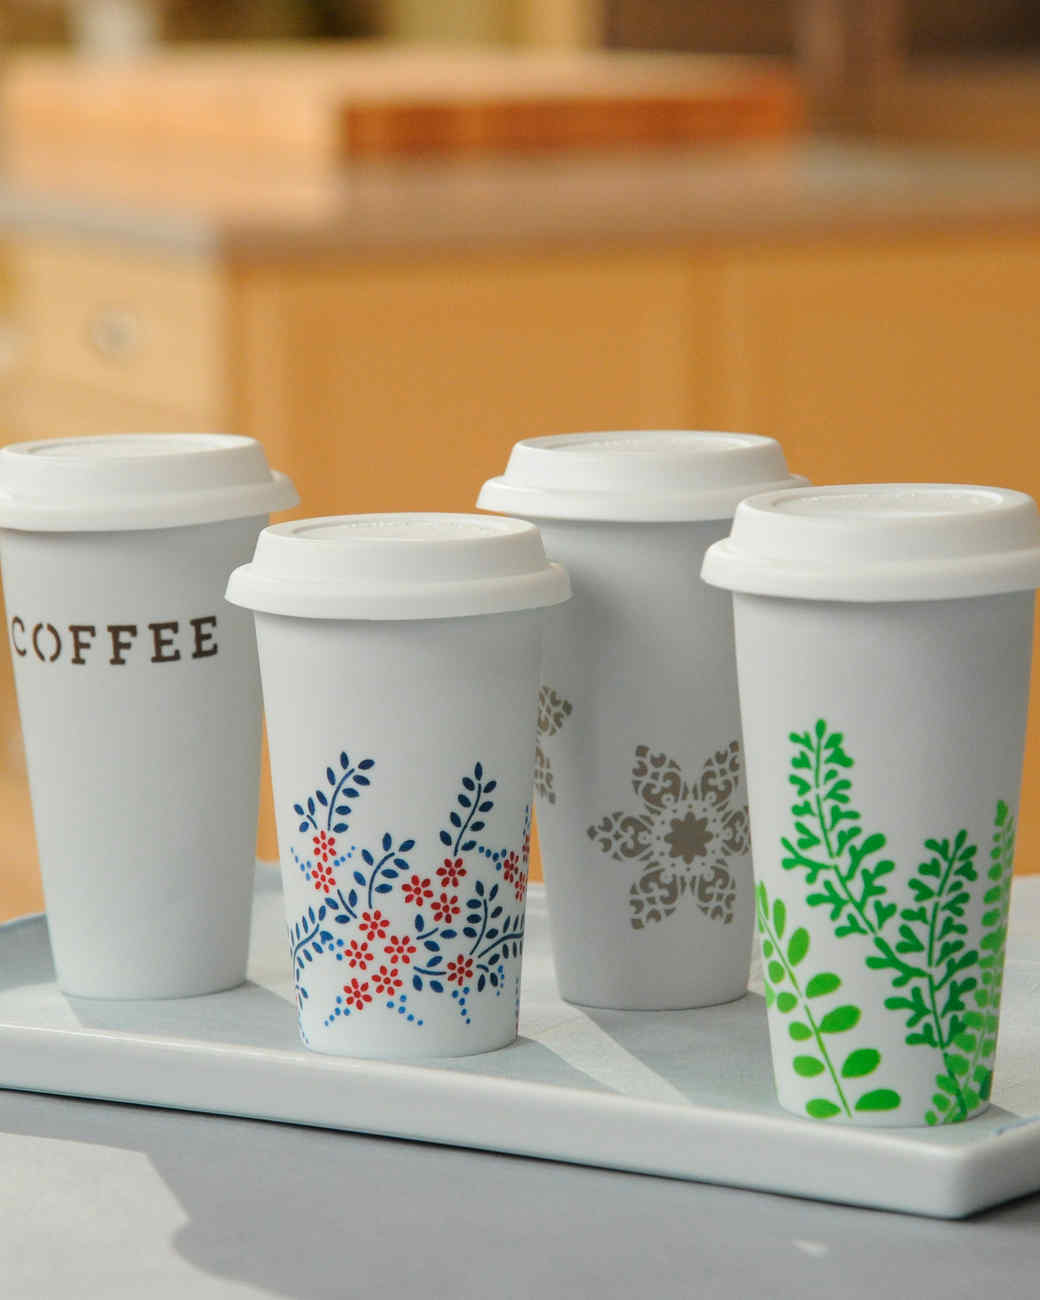 Fullsize Of Coffee Cup Design Ideas